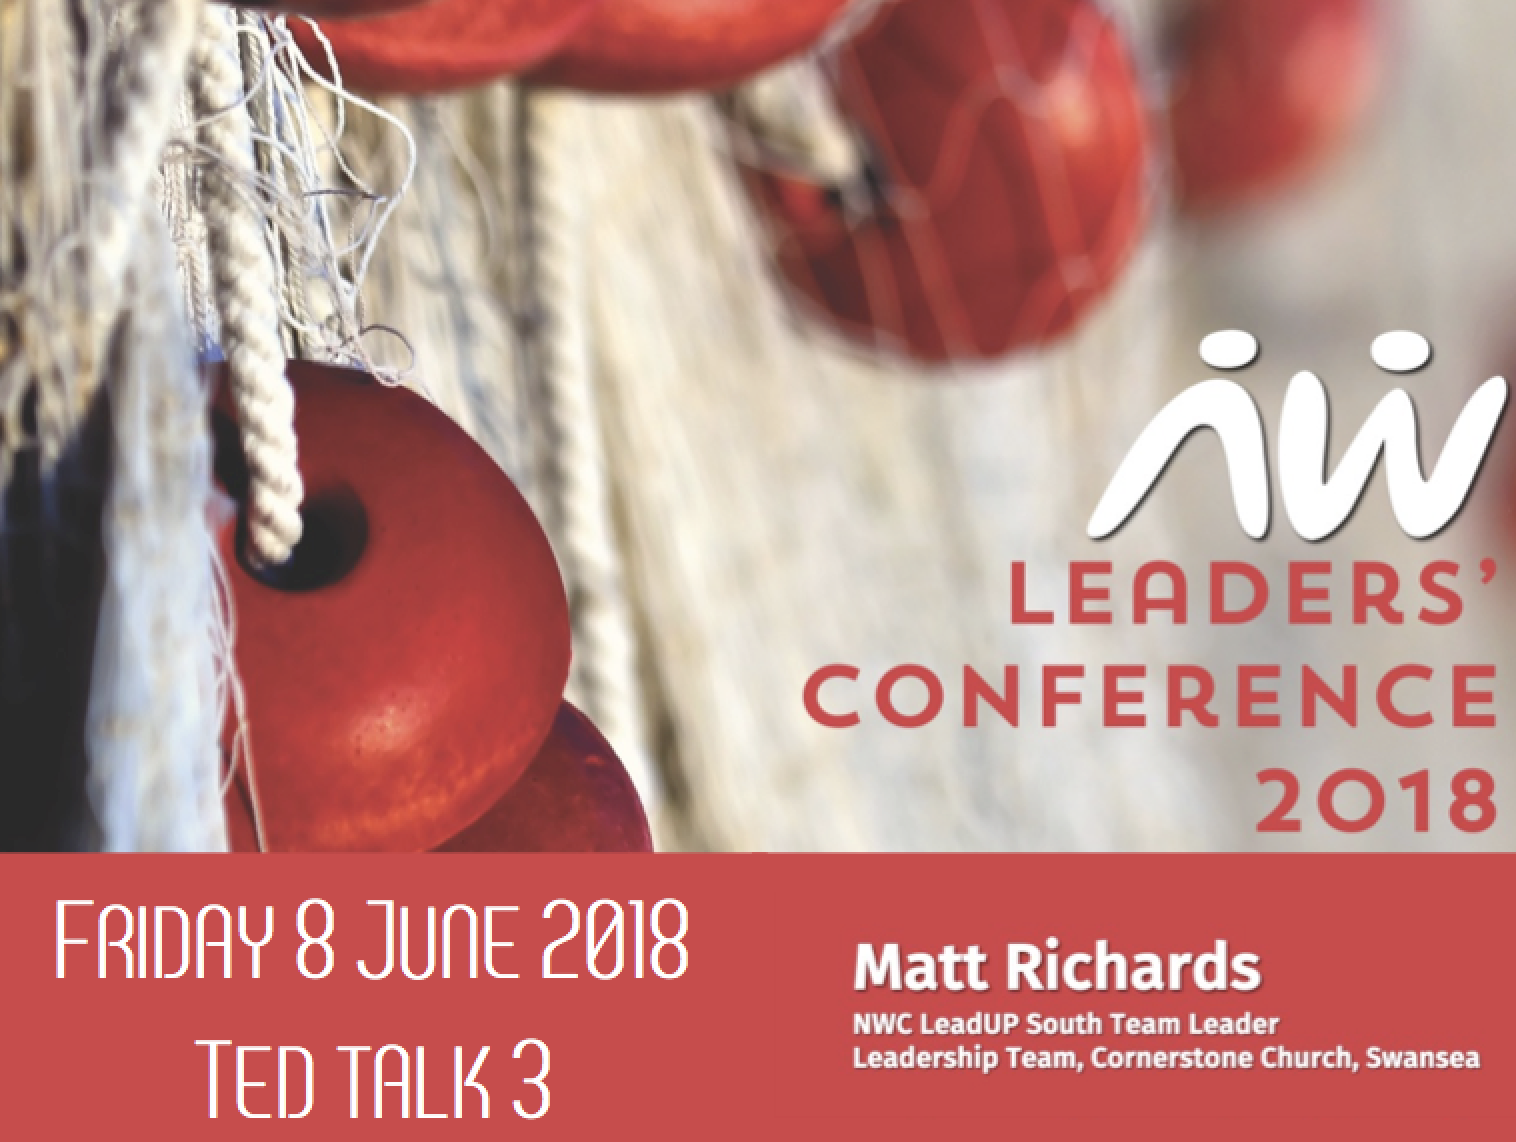 Leaders' Conference 18: TED talk 3 – Matt